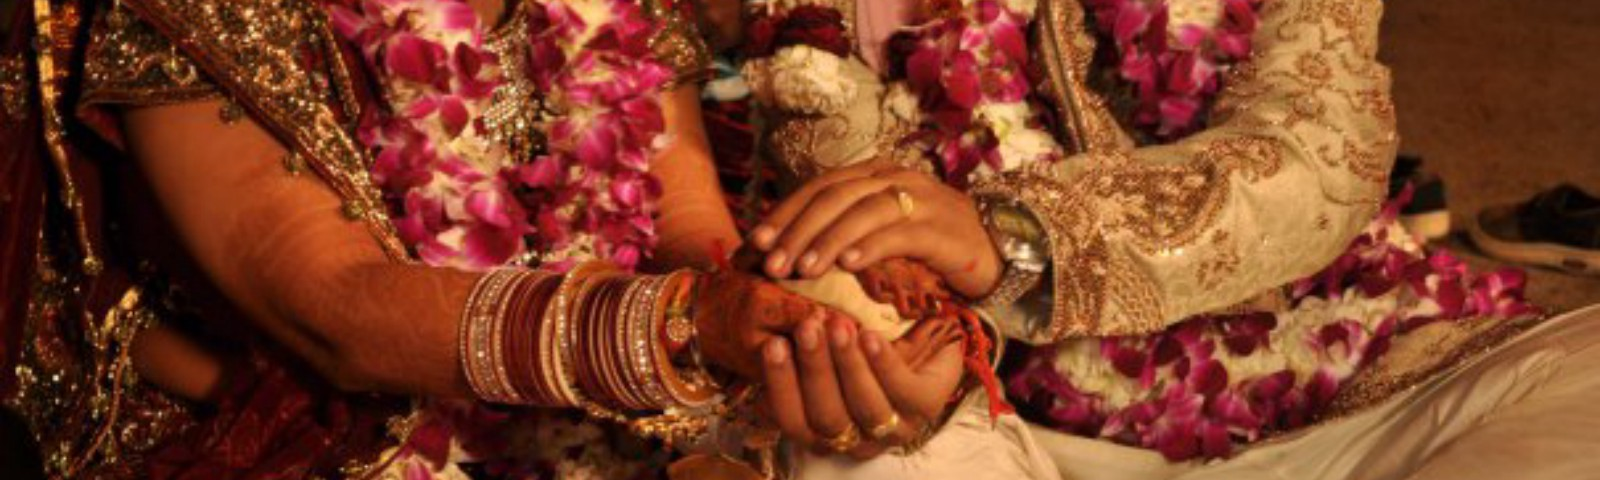 Rinanubandhan Theory part 2: Understanding Marriage, Karmic